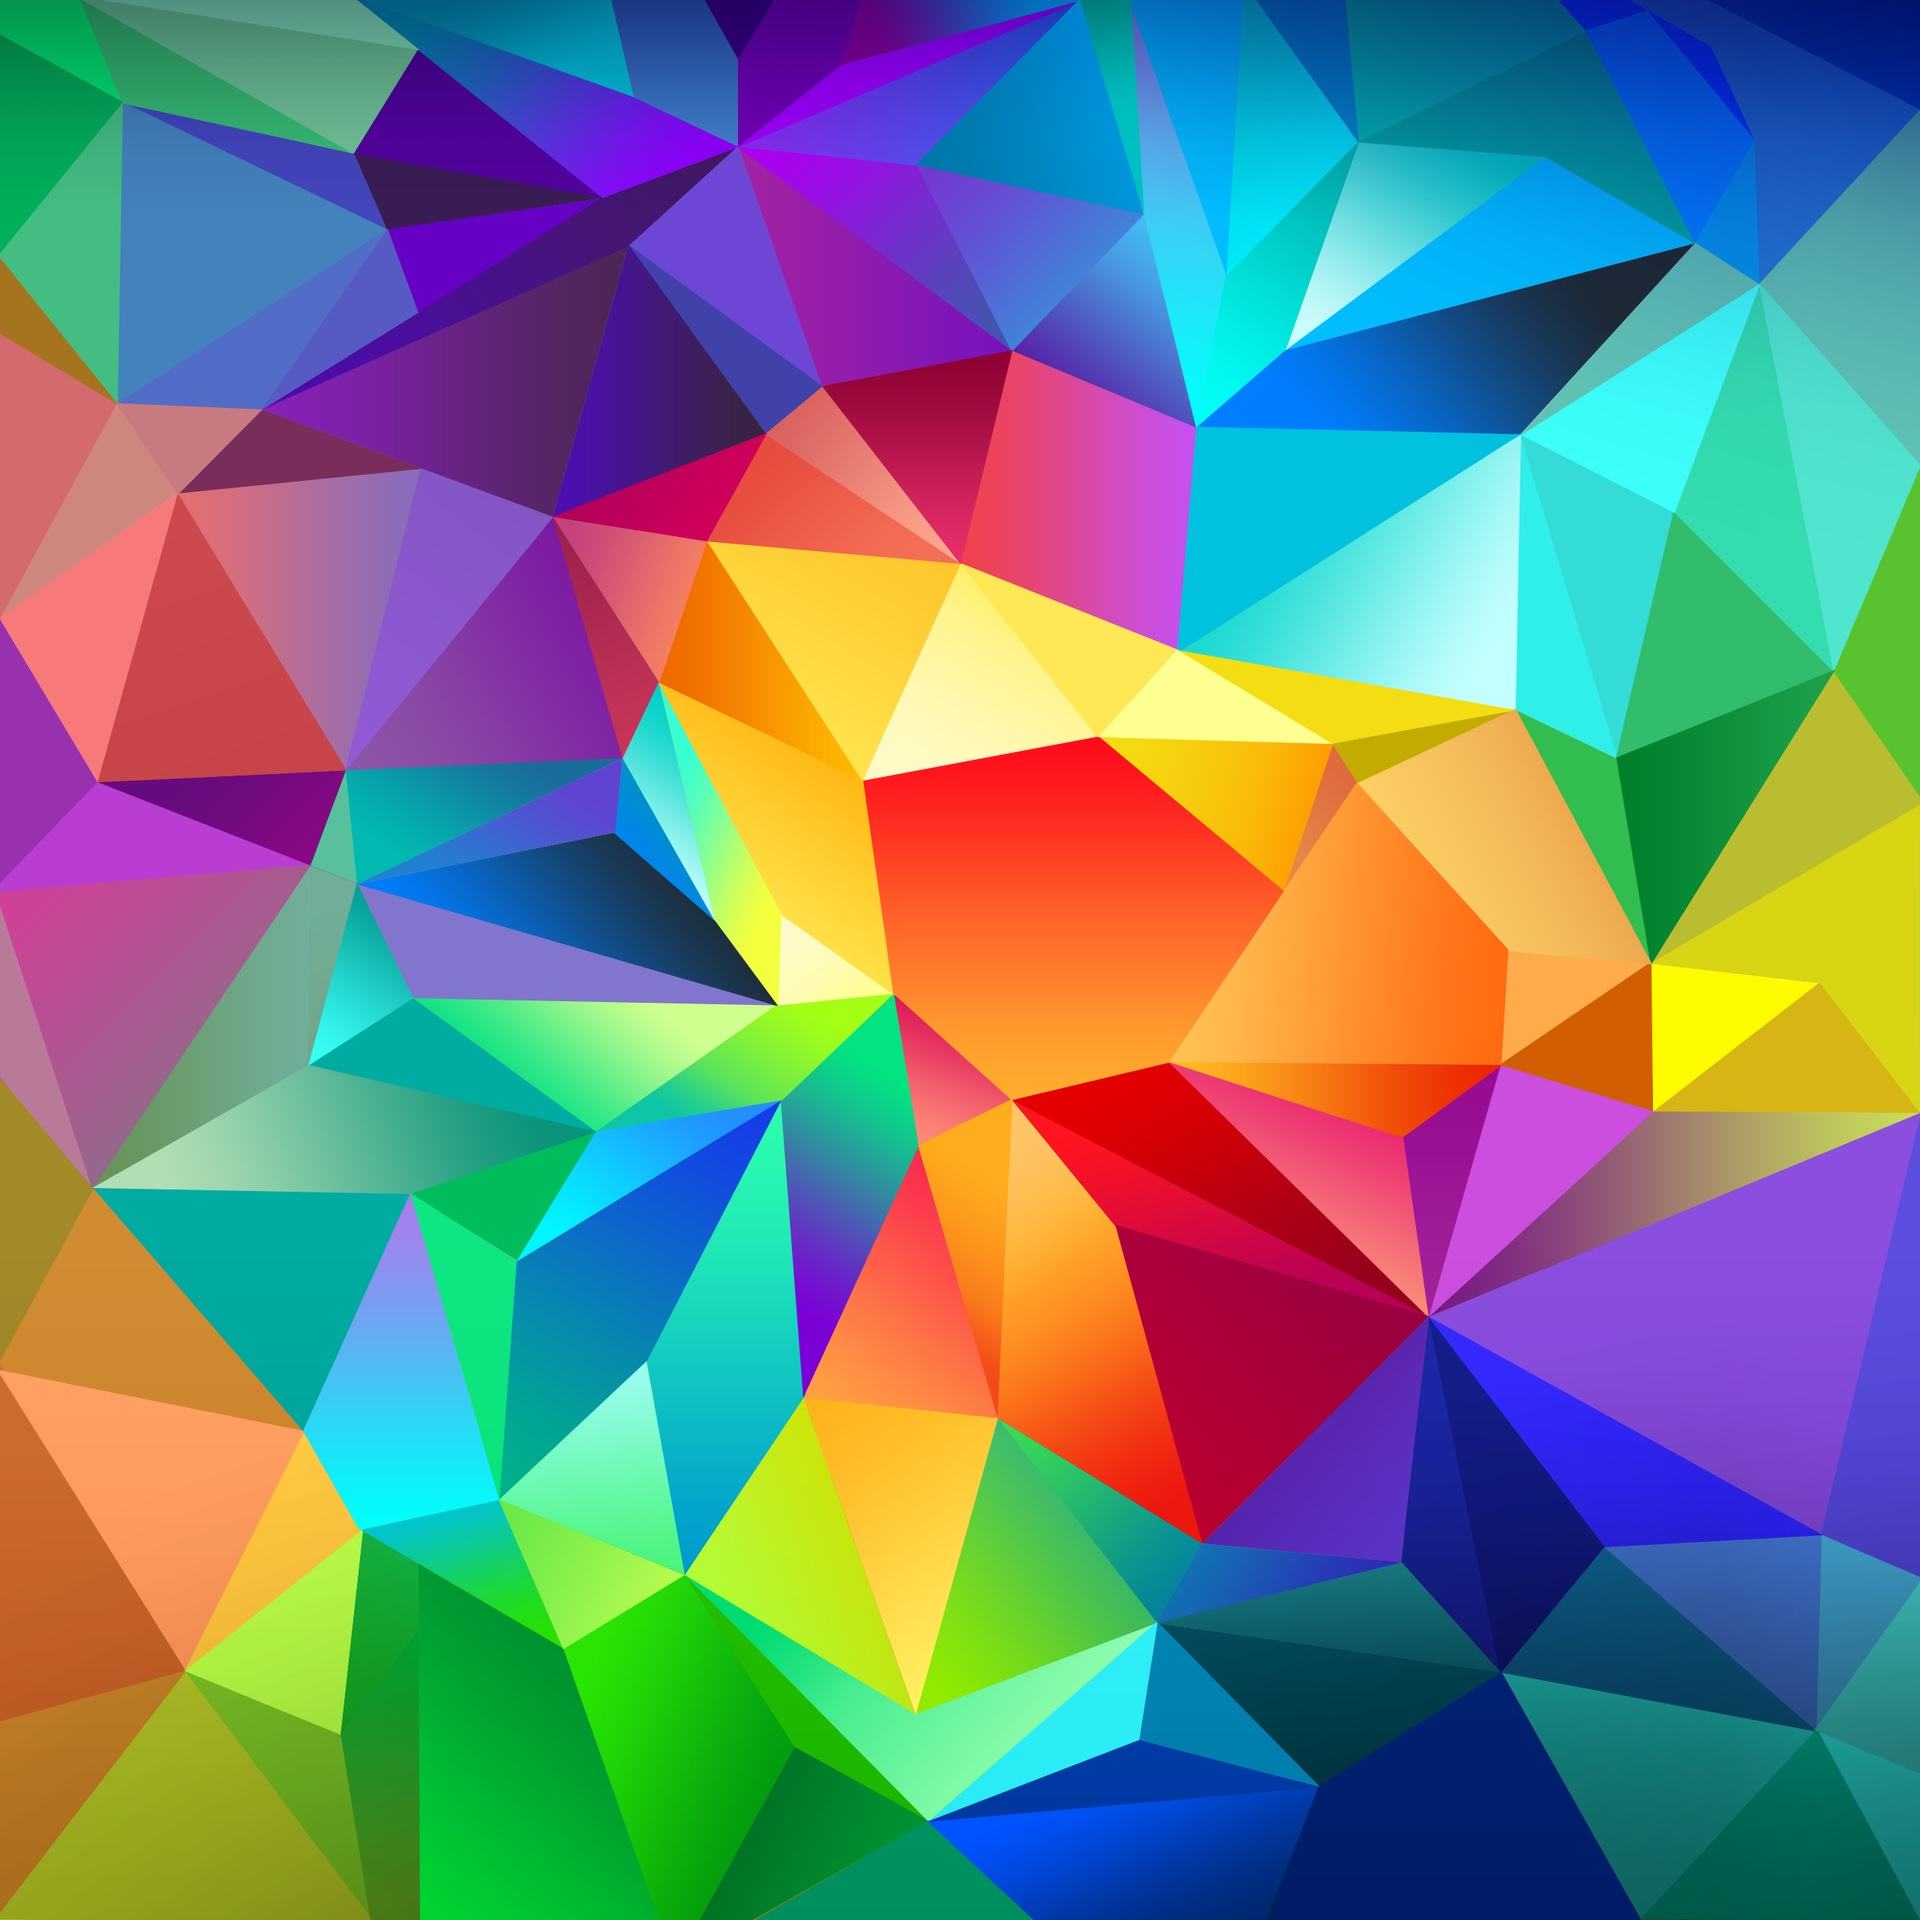 How to Download Wallpaper on the Samsung Galaxy S5 Technobezz 1920x1920